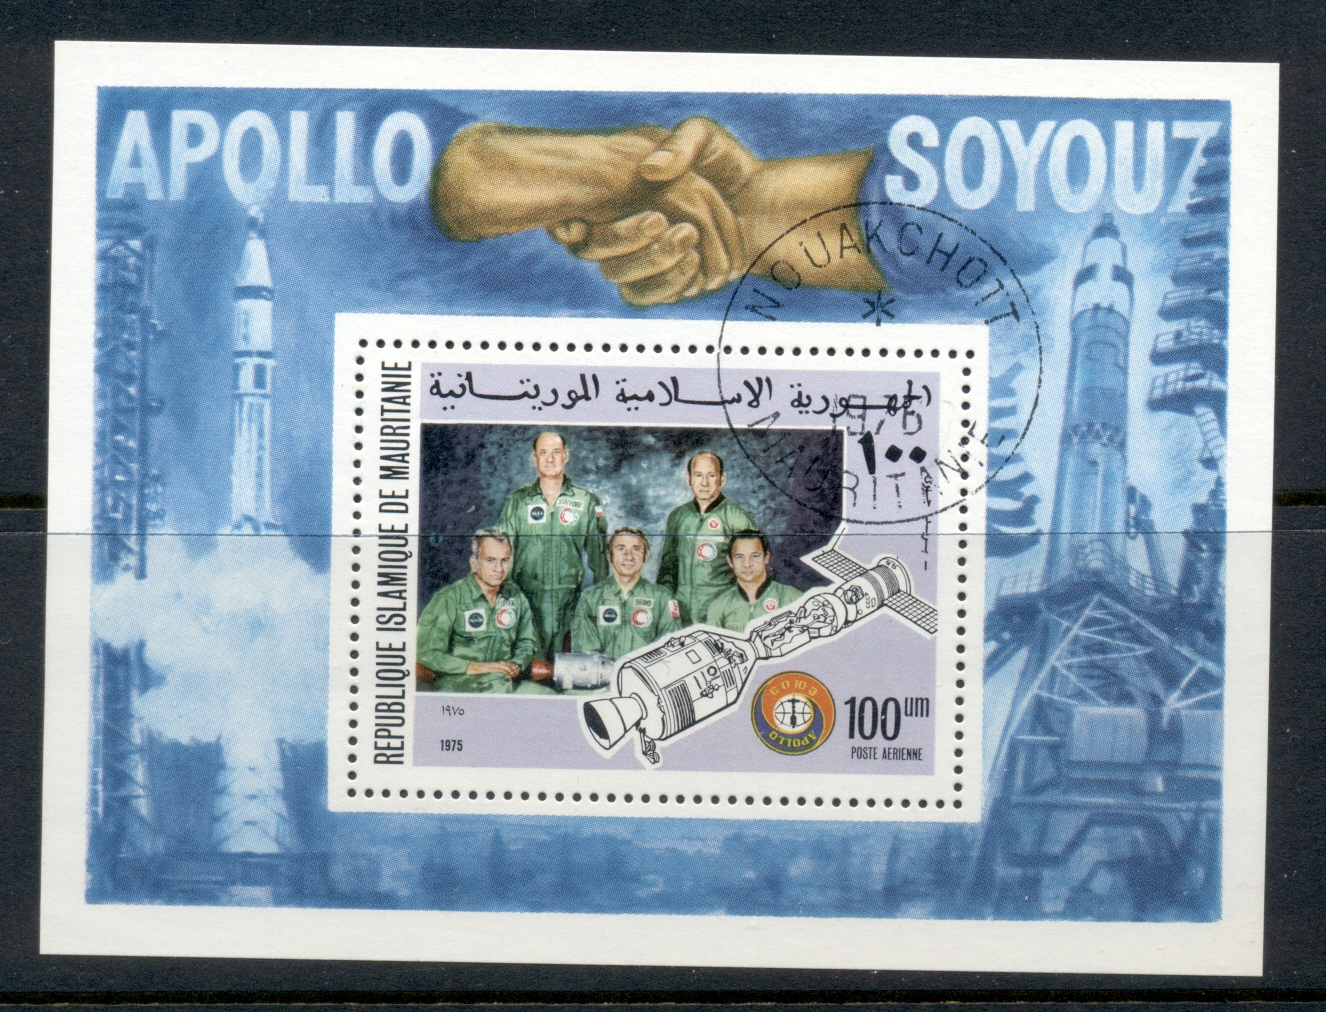 Mauritania 1976 Apollo Soyuz Space Mission MS CTO